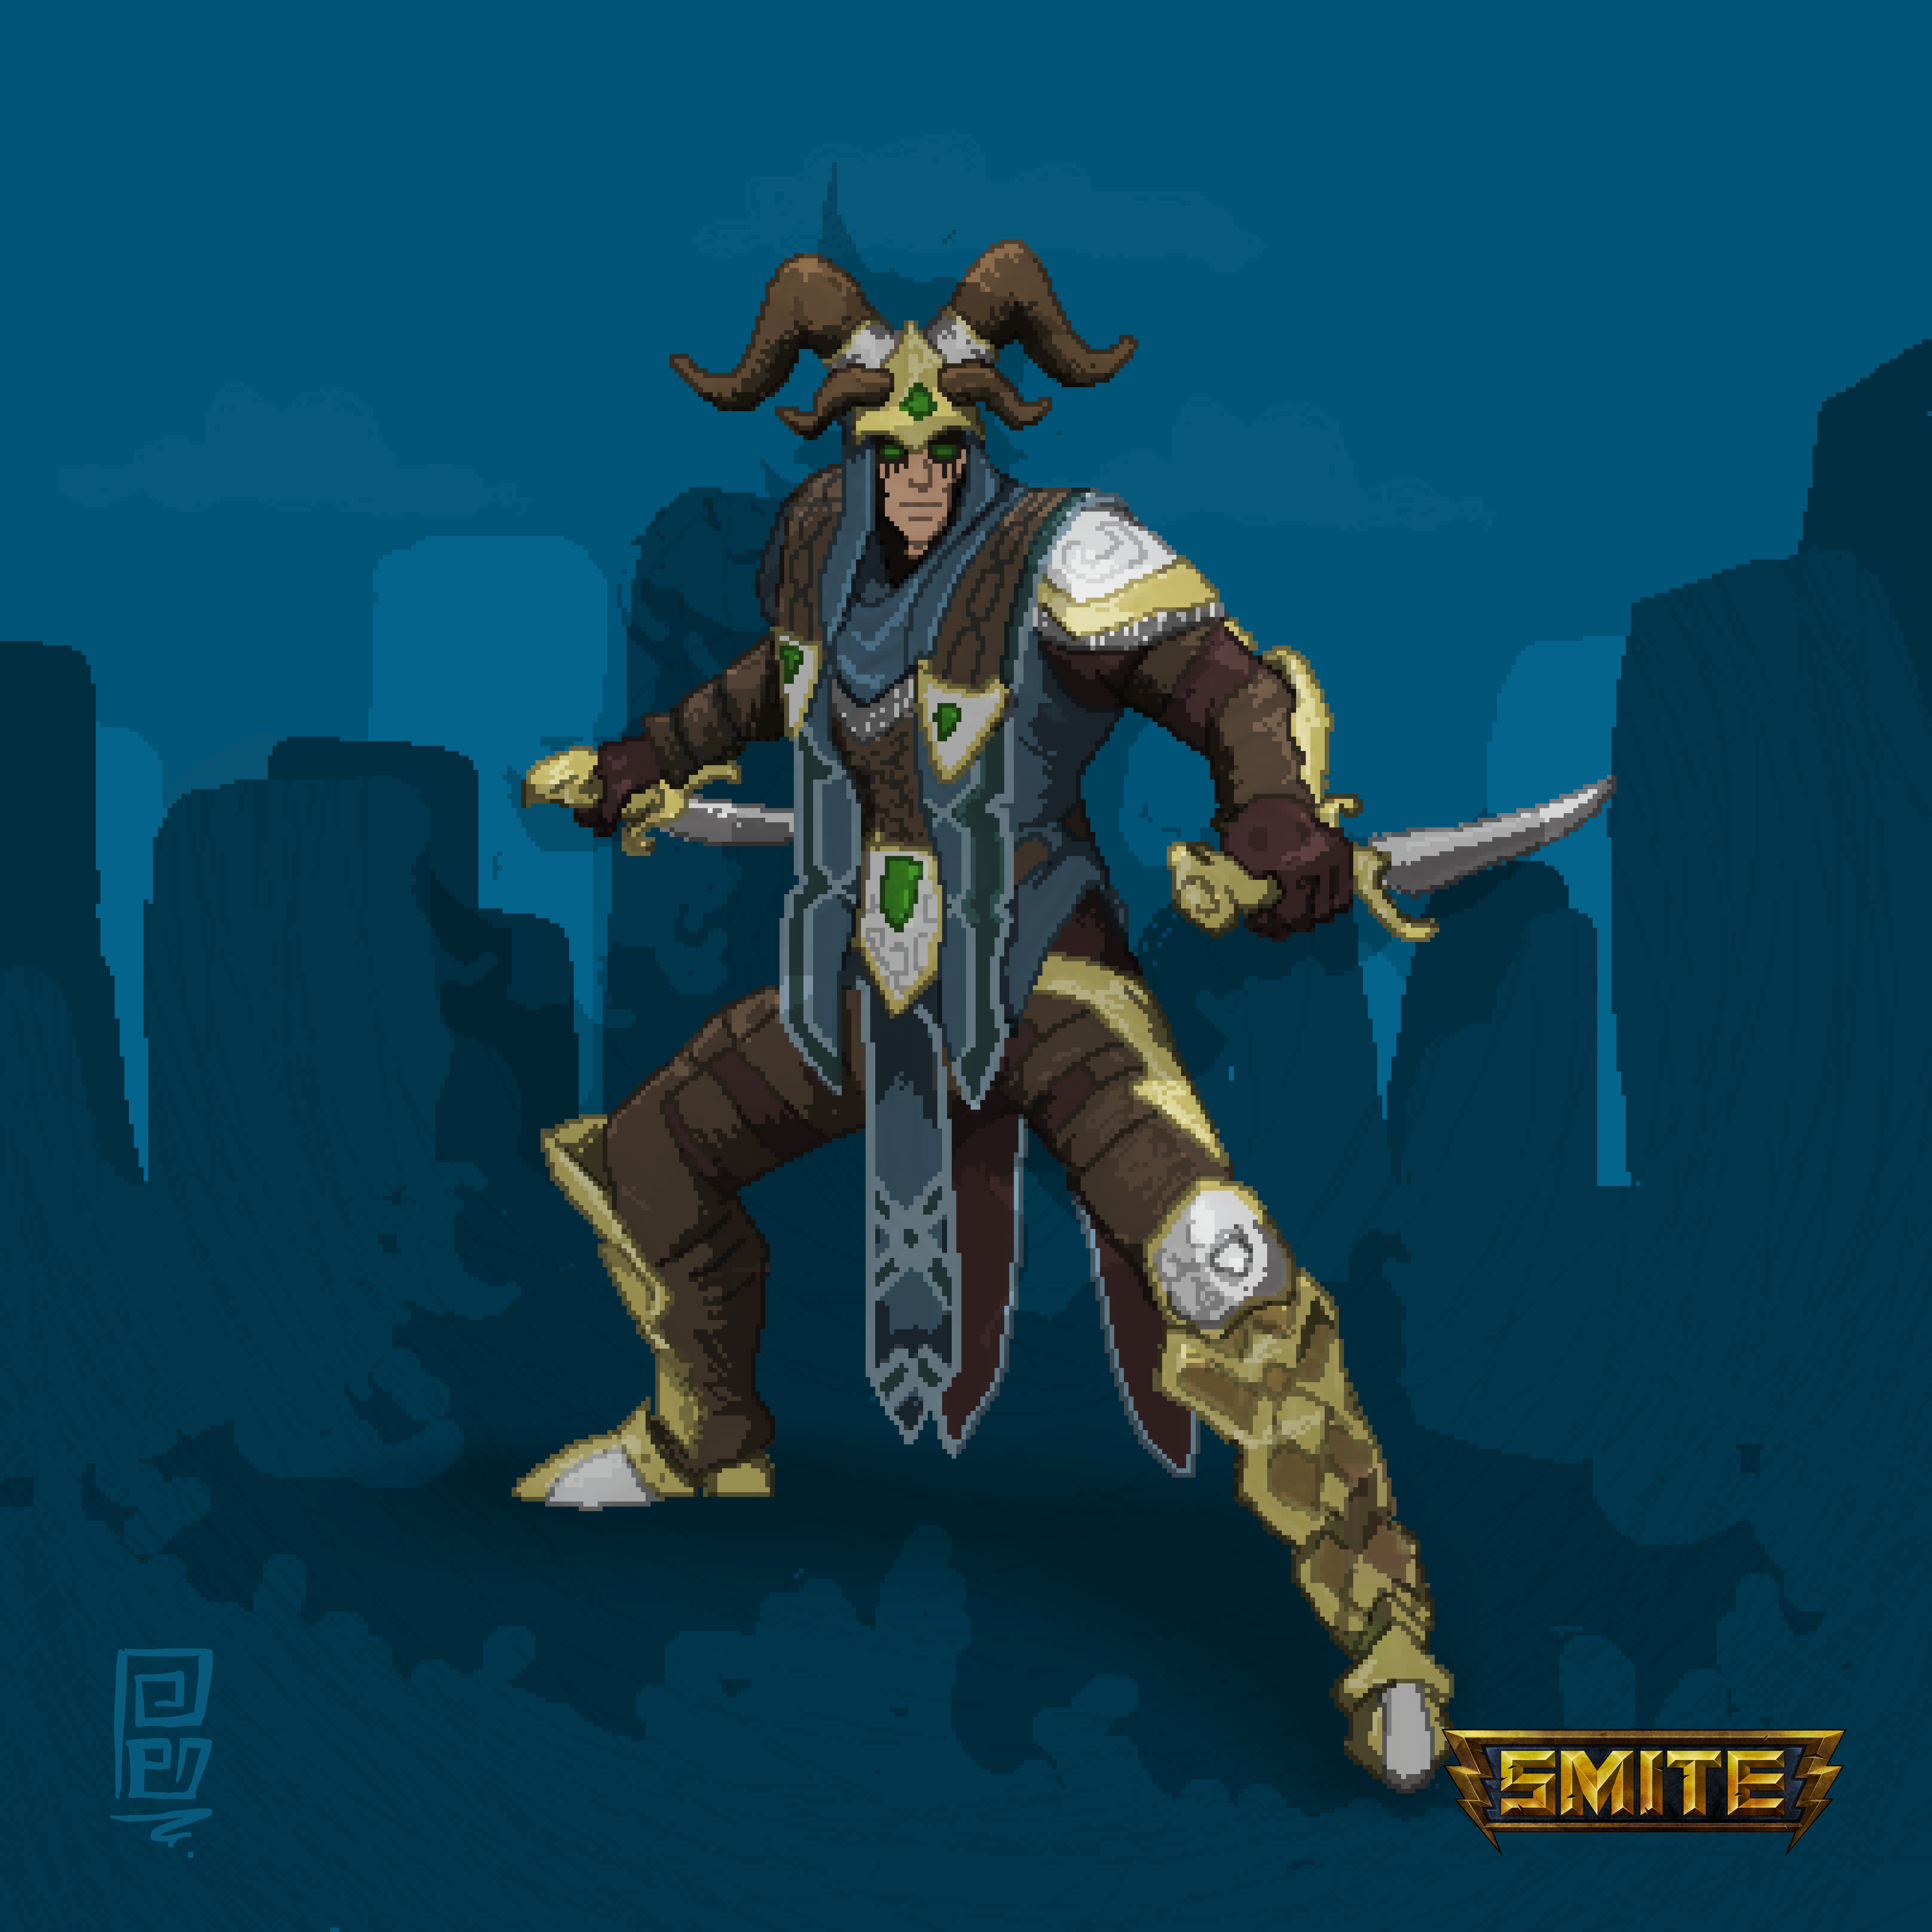 Pictures of Smite Wallpaper Loki - #rock-cafe